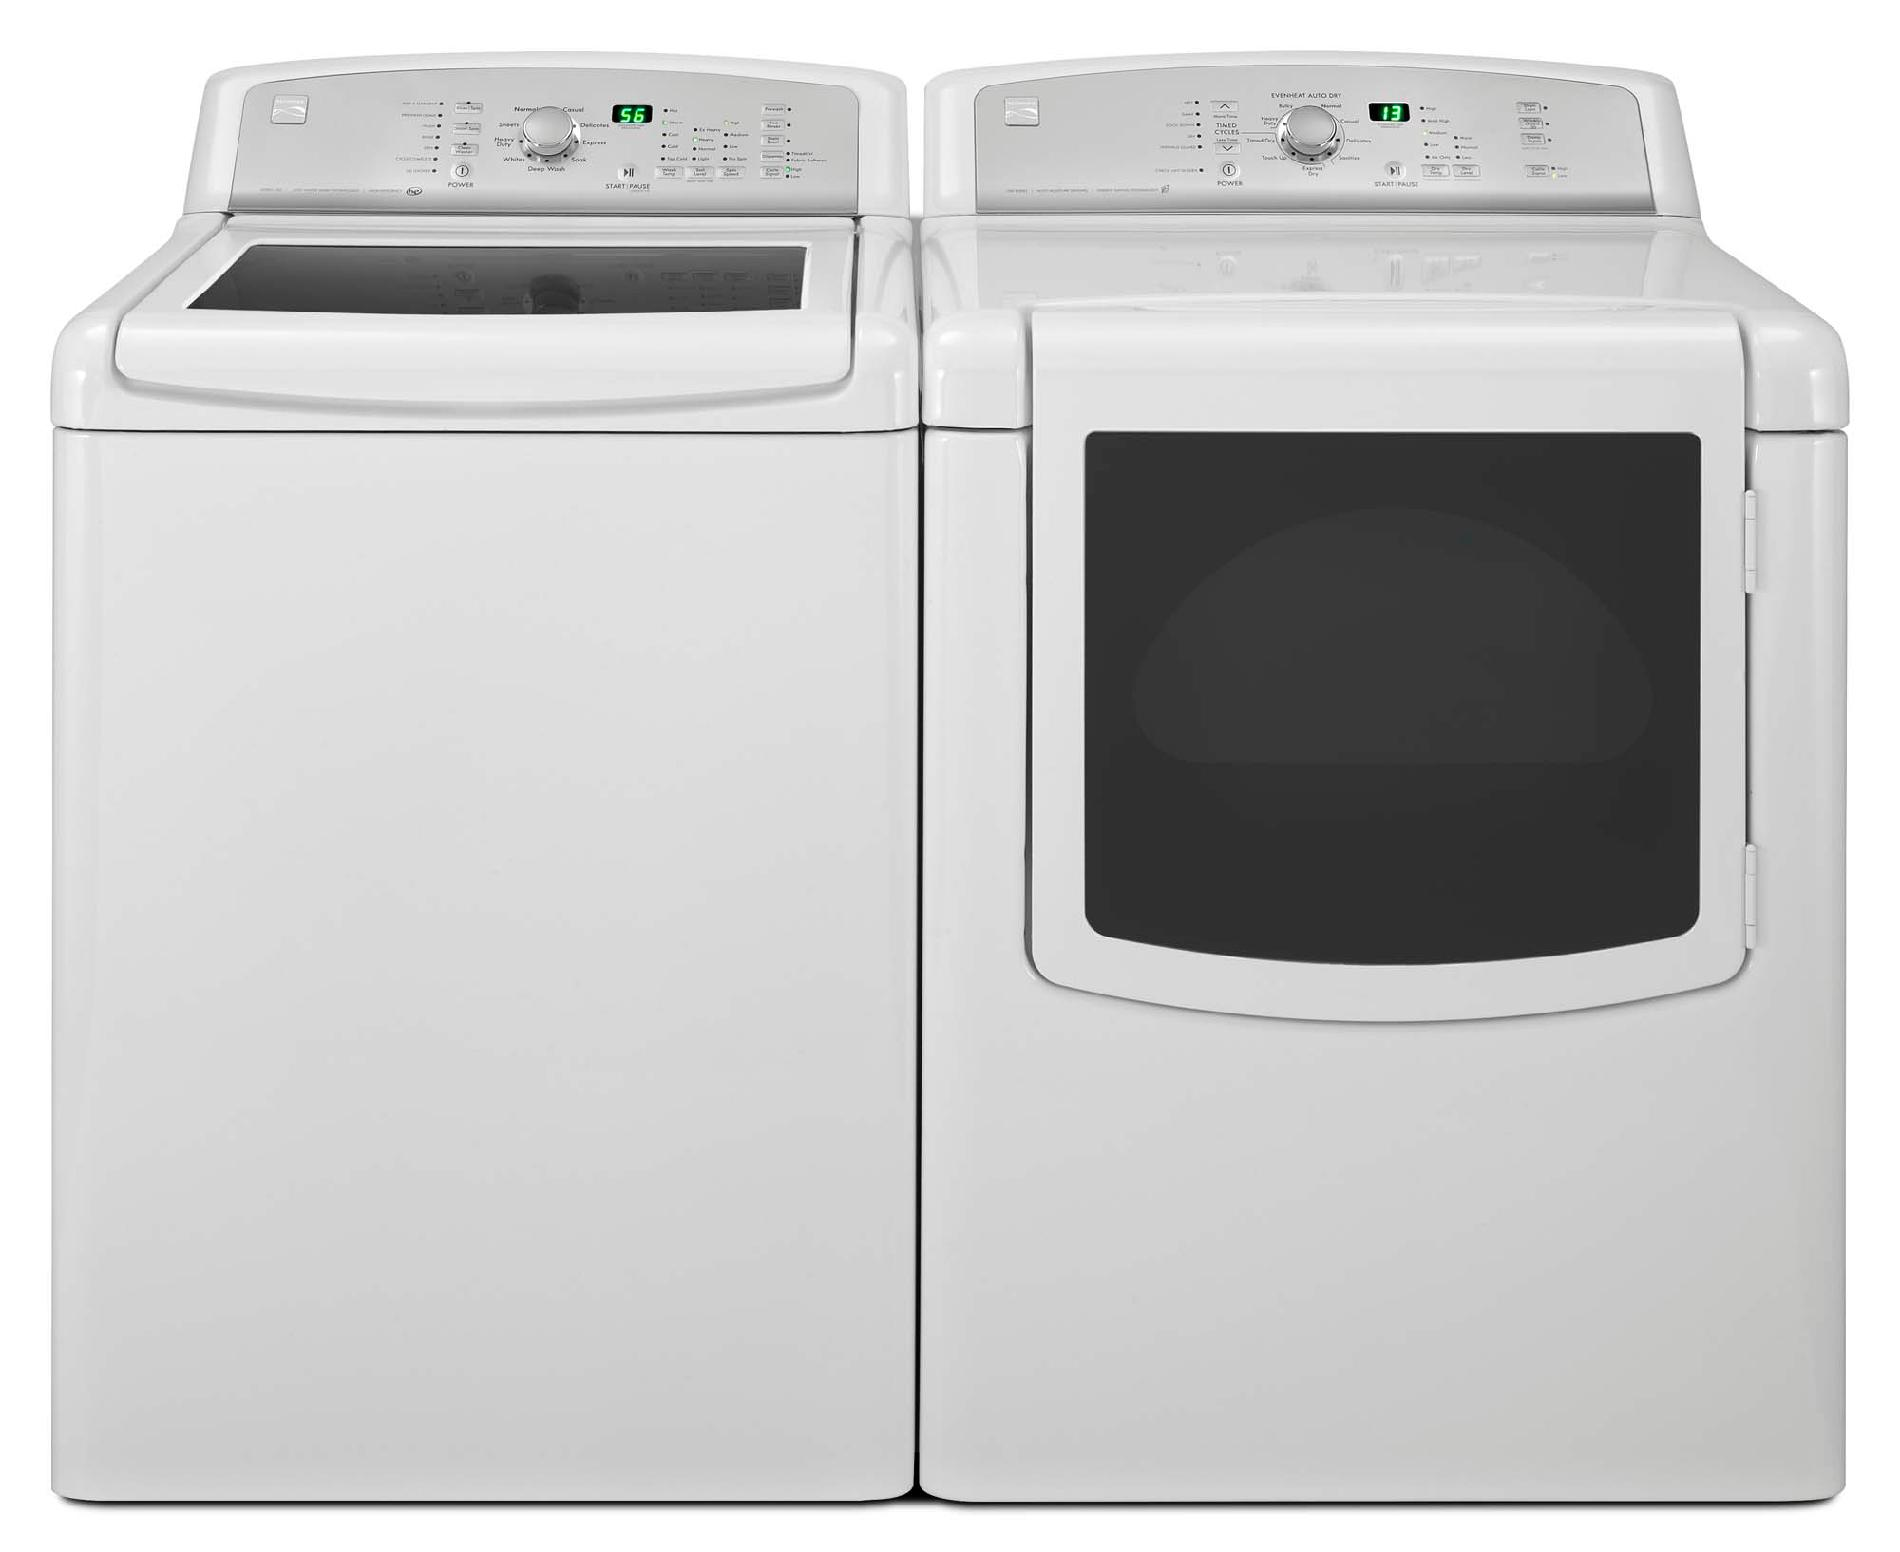 Kenmore 4.5 cu. ft. High-Efficiency Top-Load Washer w/ Express Cycle - White